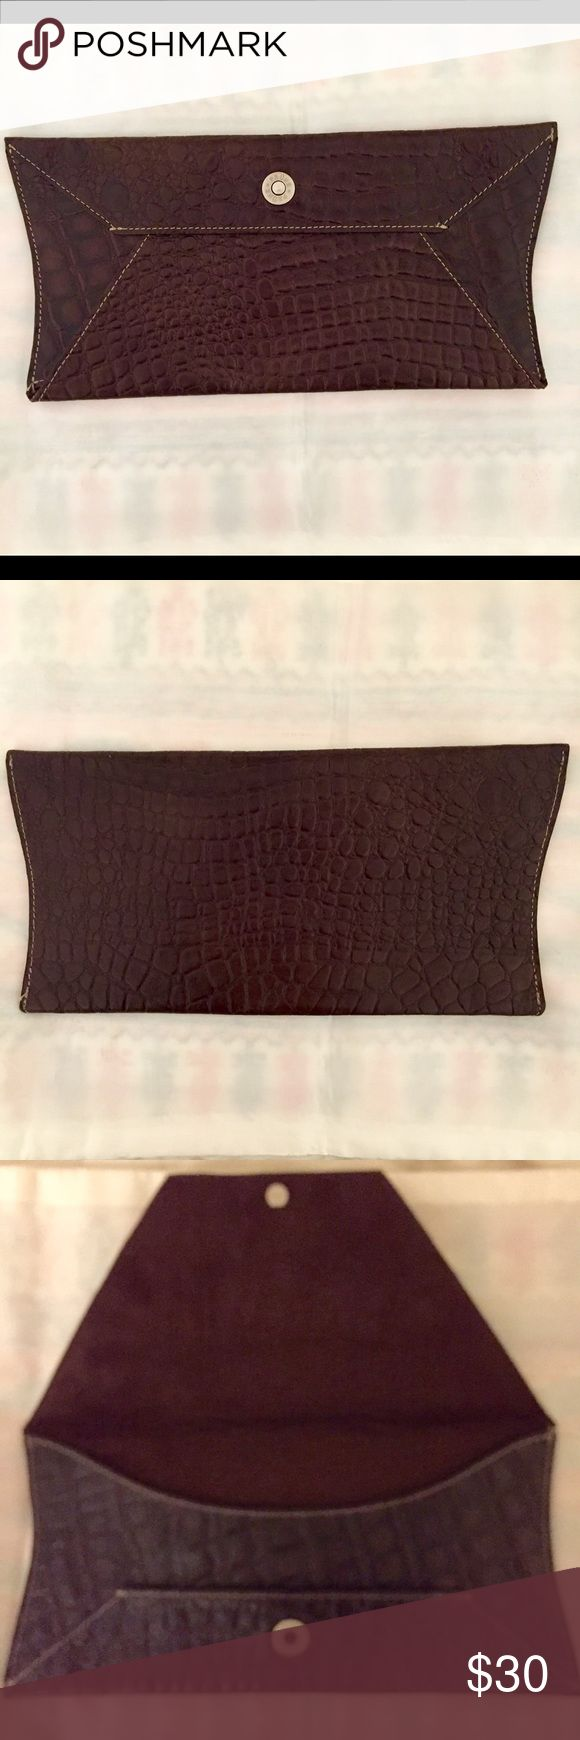 "Prune of Buenos Aires Envelope Clutch Prune of Buenos Aires, Argentina, Envelope Clutch fashioned from deep brown leather embossed in reptile pattern. Accent stitching is tan. Bag fastens in front with a snap bearing Prune logo. Measures 12""x5-1/4"". Never used and in immaculate condition. Prune of Buenos Aires Bags Clutches & Wristlets"